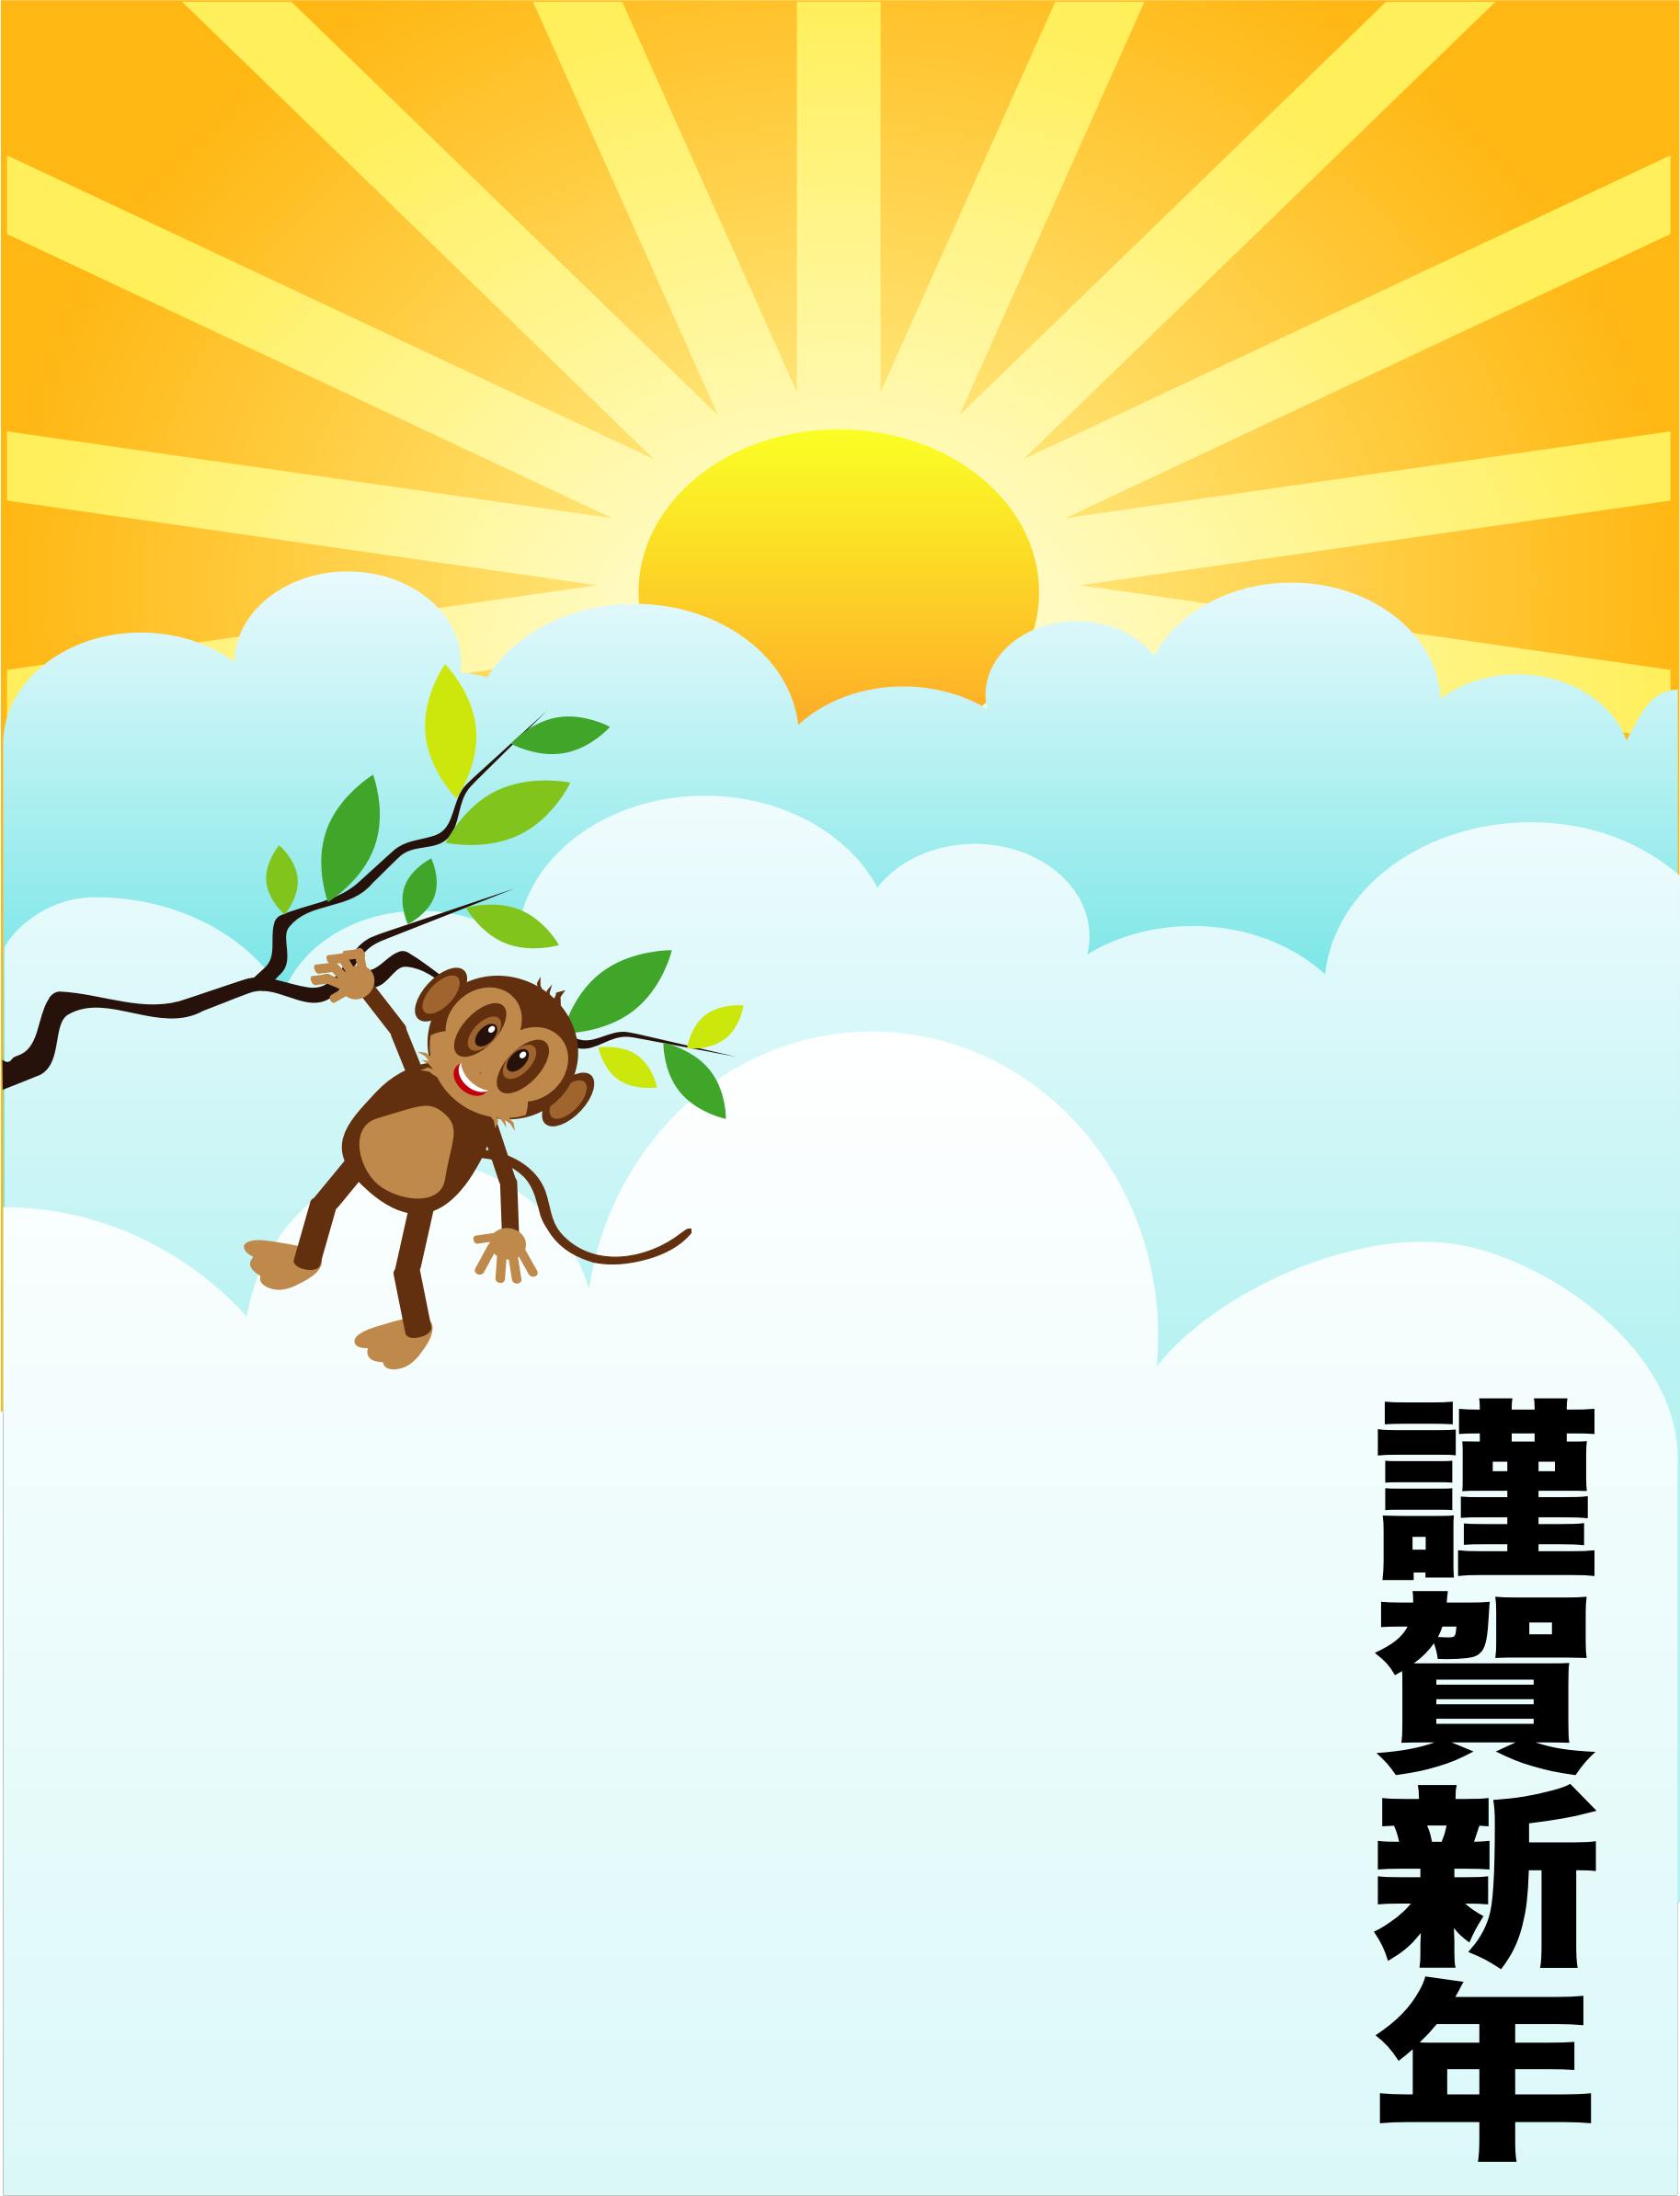 Year of the Monkey card by j4p4n